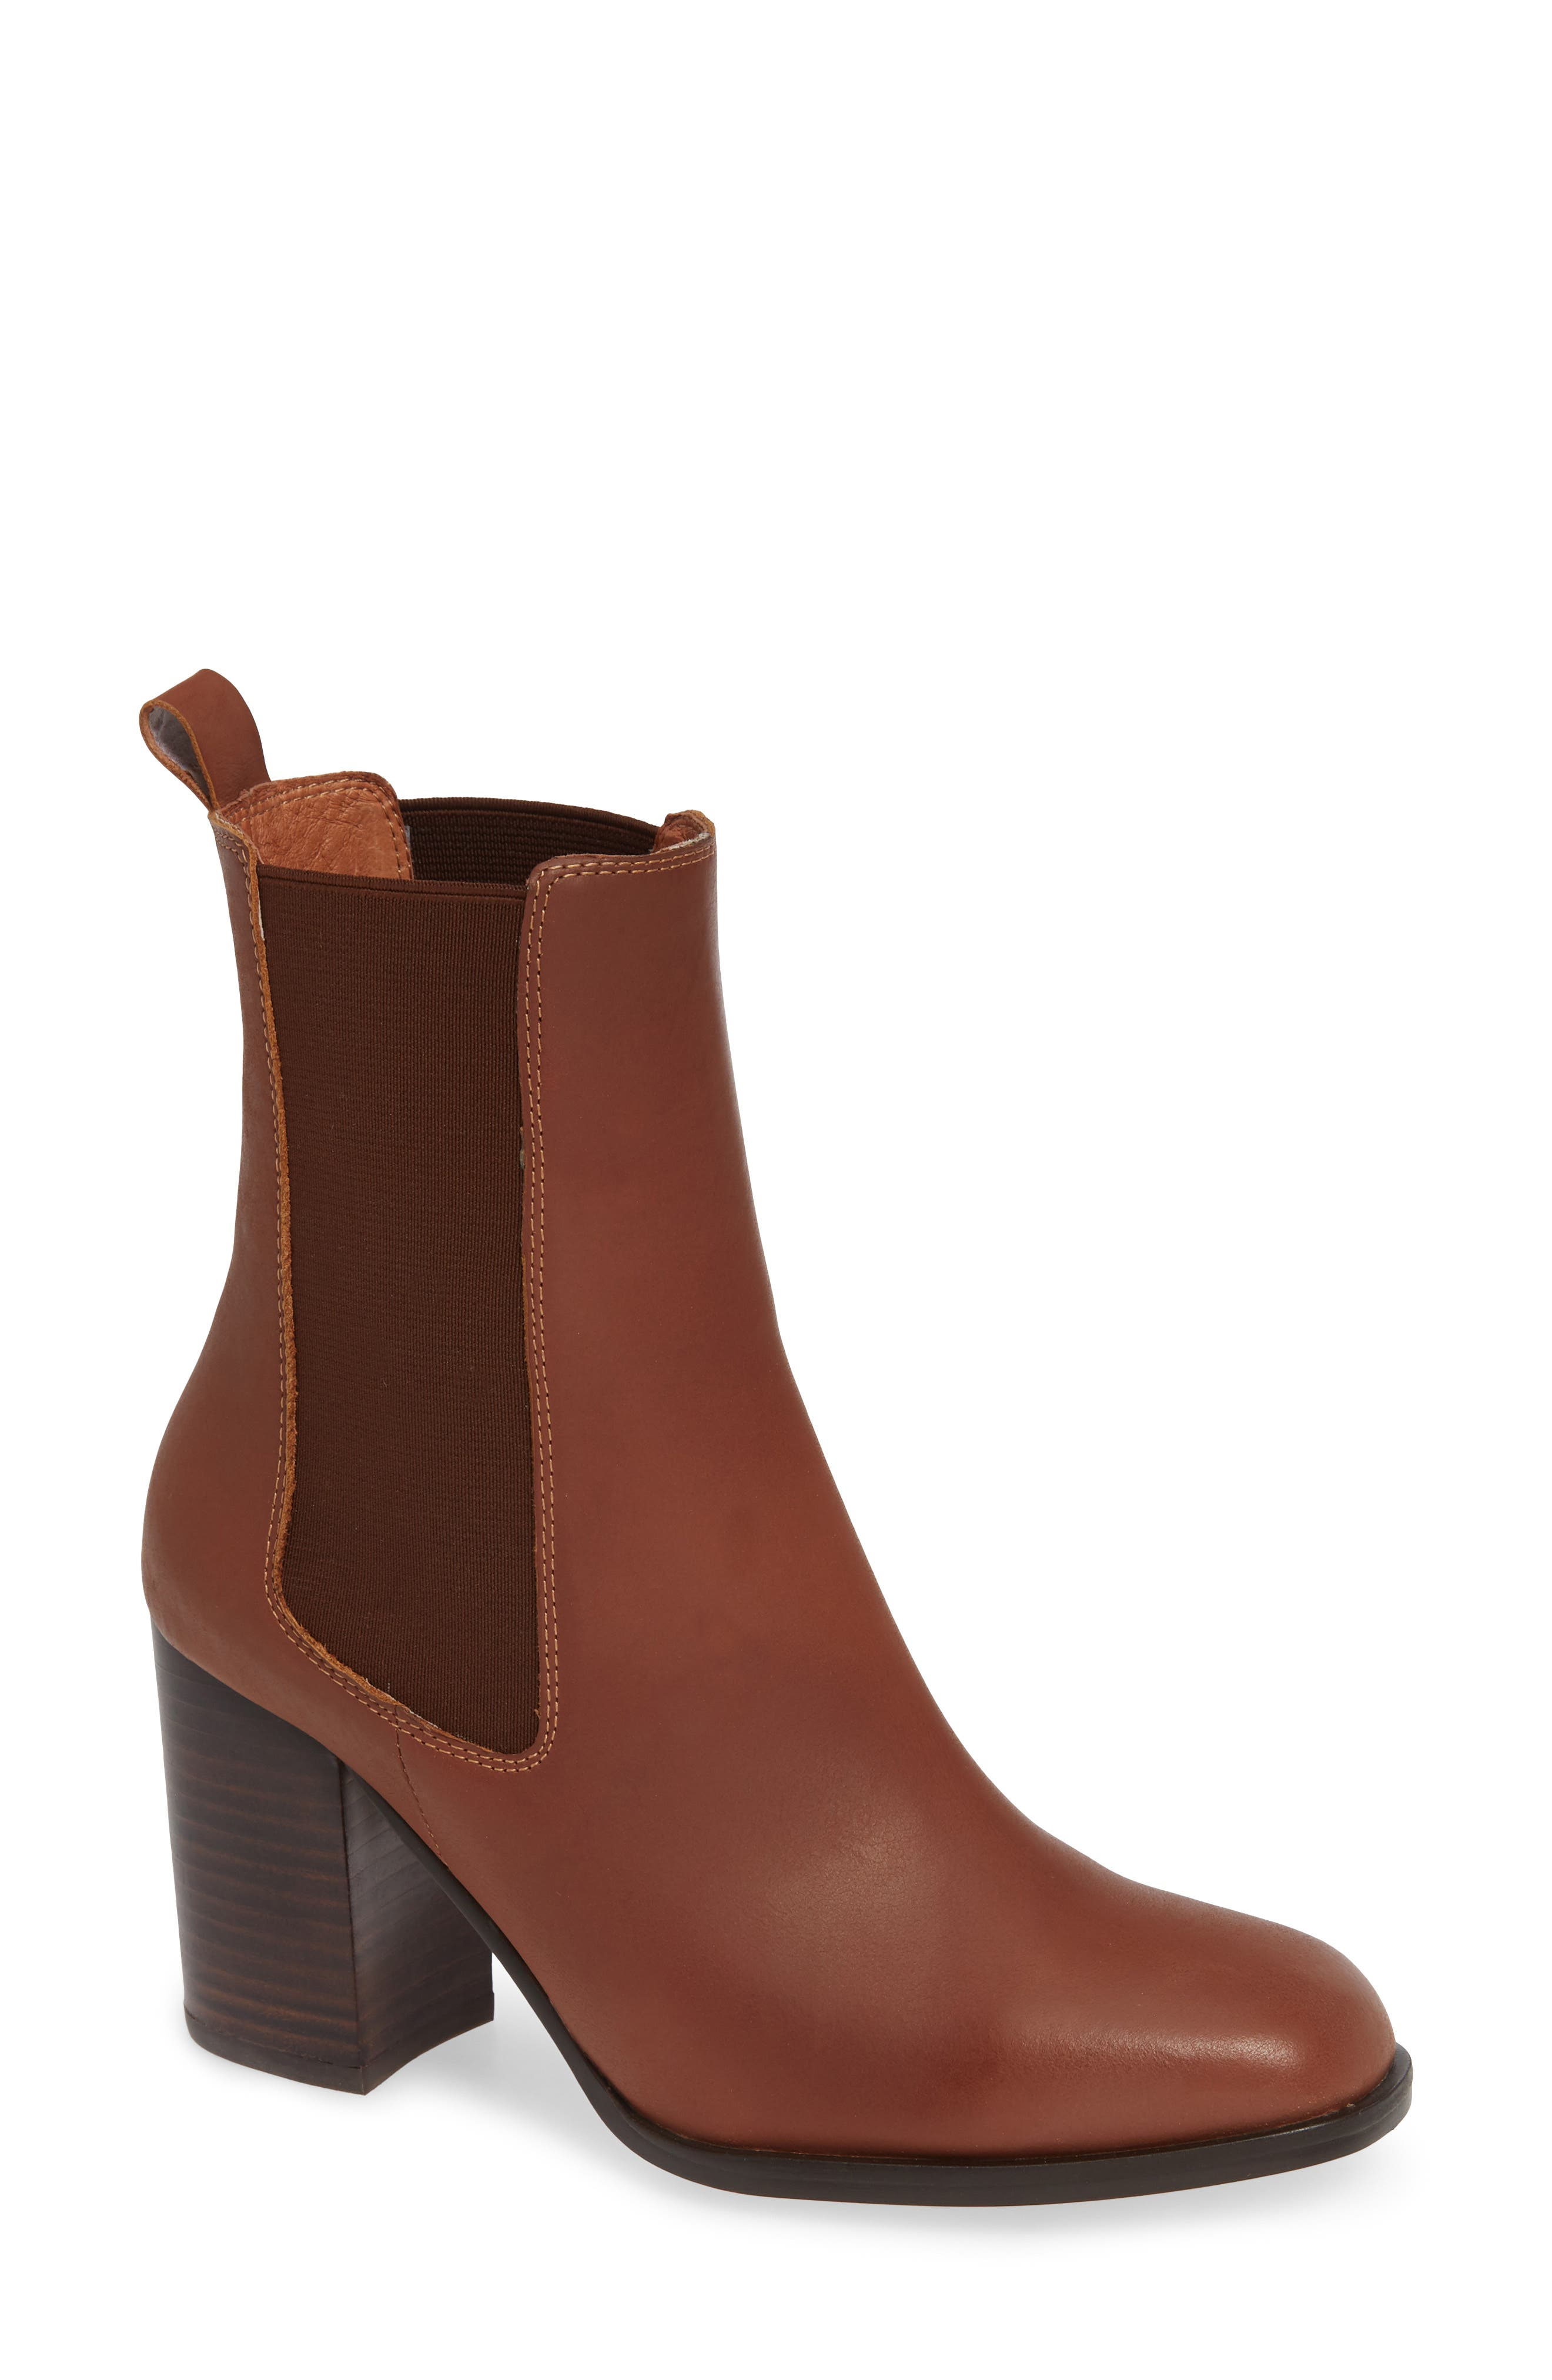 ALIAS MAE Nyala Chelsea Bootie in Tan Leather